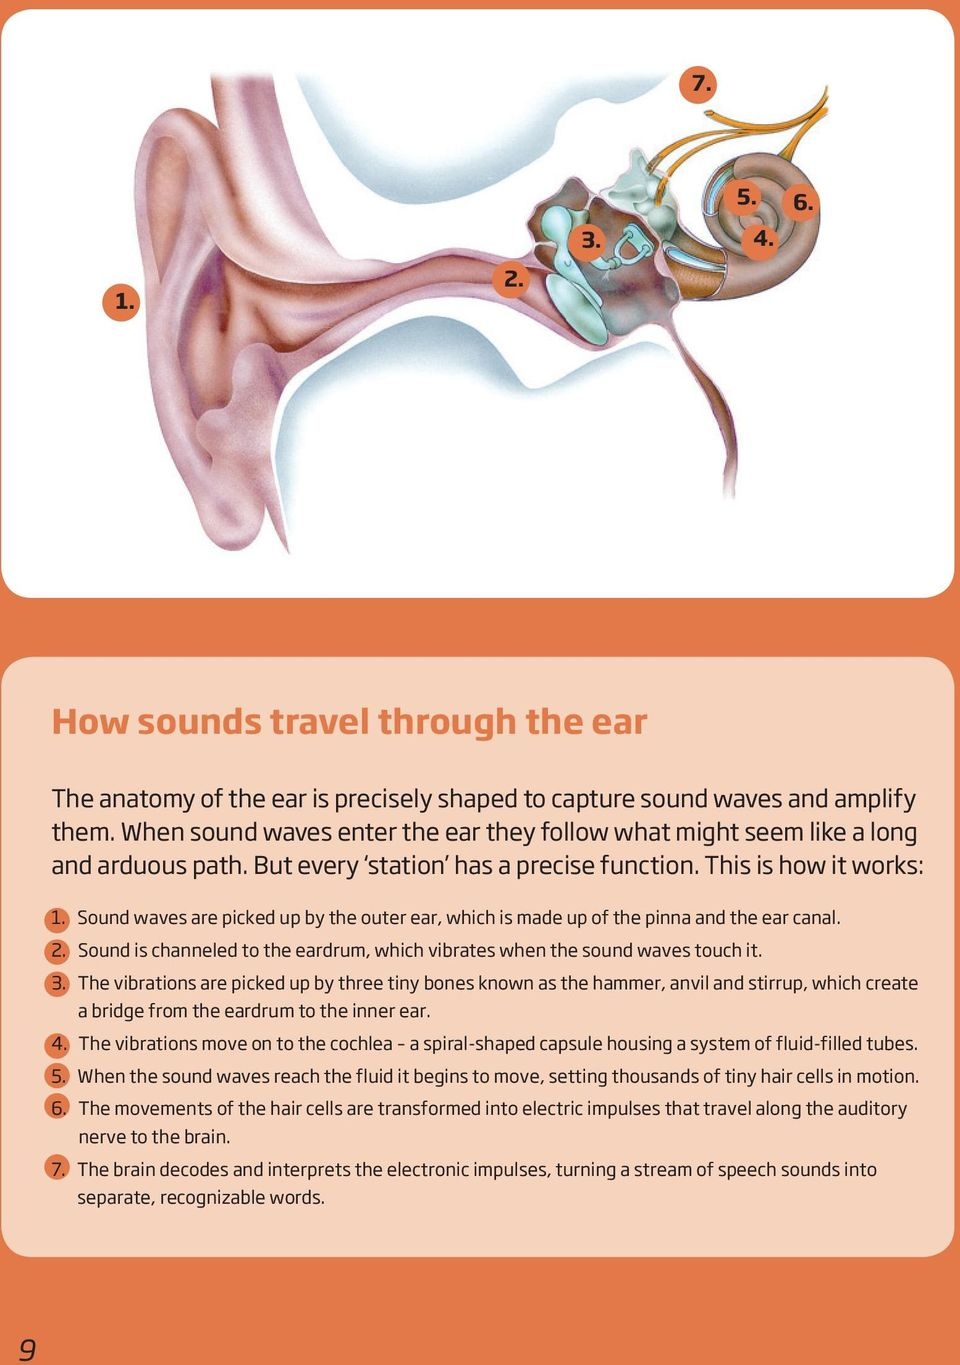 Sound waves are picked up by the outer ear, which is made up of the pinna and the ear canal. 2. Sound is channeled to the eardrum, which vibrates when the sound waves touch it. 3.